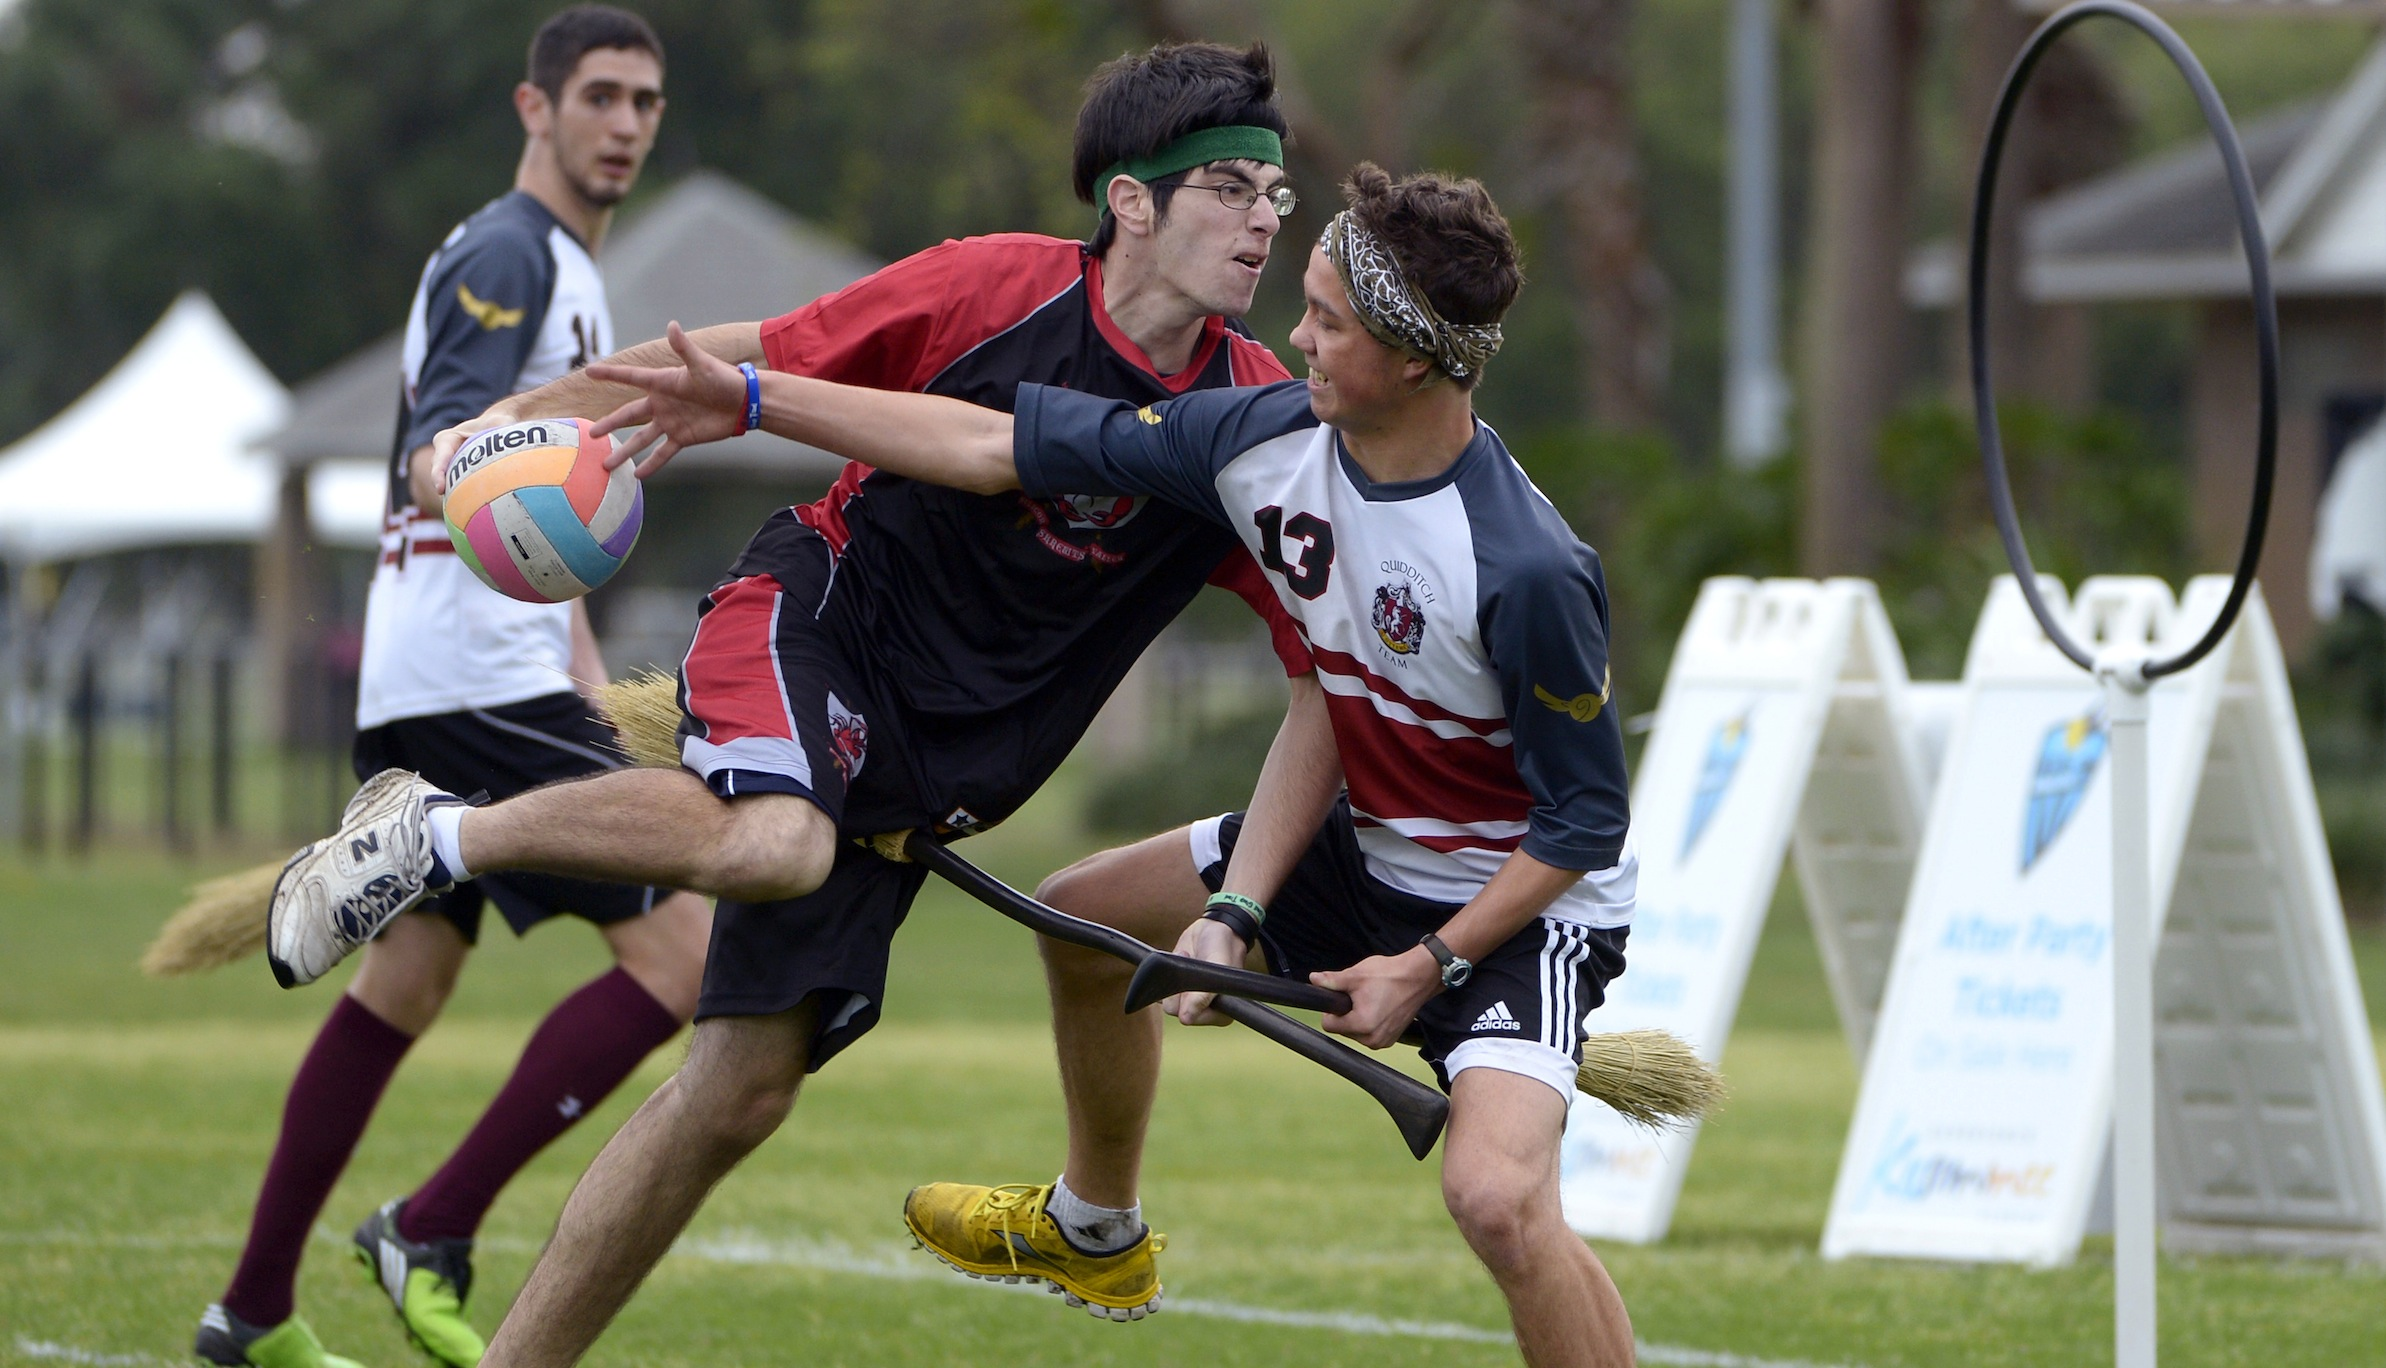 Silicon Valley Skrewts' Logan Anbinder, center, drives to the goal between the University of Ottawa Quidditch team's Matthew Bunn, right, and Ahmed Al-Slaq during a scrimmage at the Quidditch World Cup in Kissimmee, Fla., Friday, April 12, 2013.  Quidditch is a game born within the pages of Harry Potter novels, but in recent years it's become a real-life sport.  The game is a co-ed, full contact sport that combines elements of rugby, dodgeball and Olympic handball. (AP Photo/Phelan M. Ebenhack)